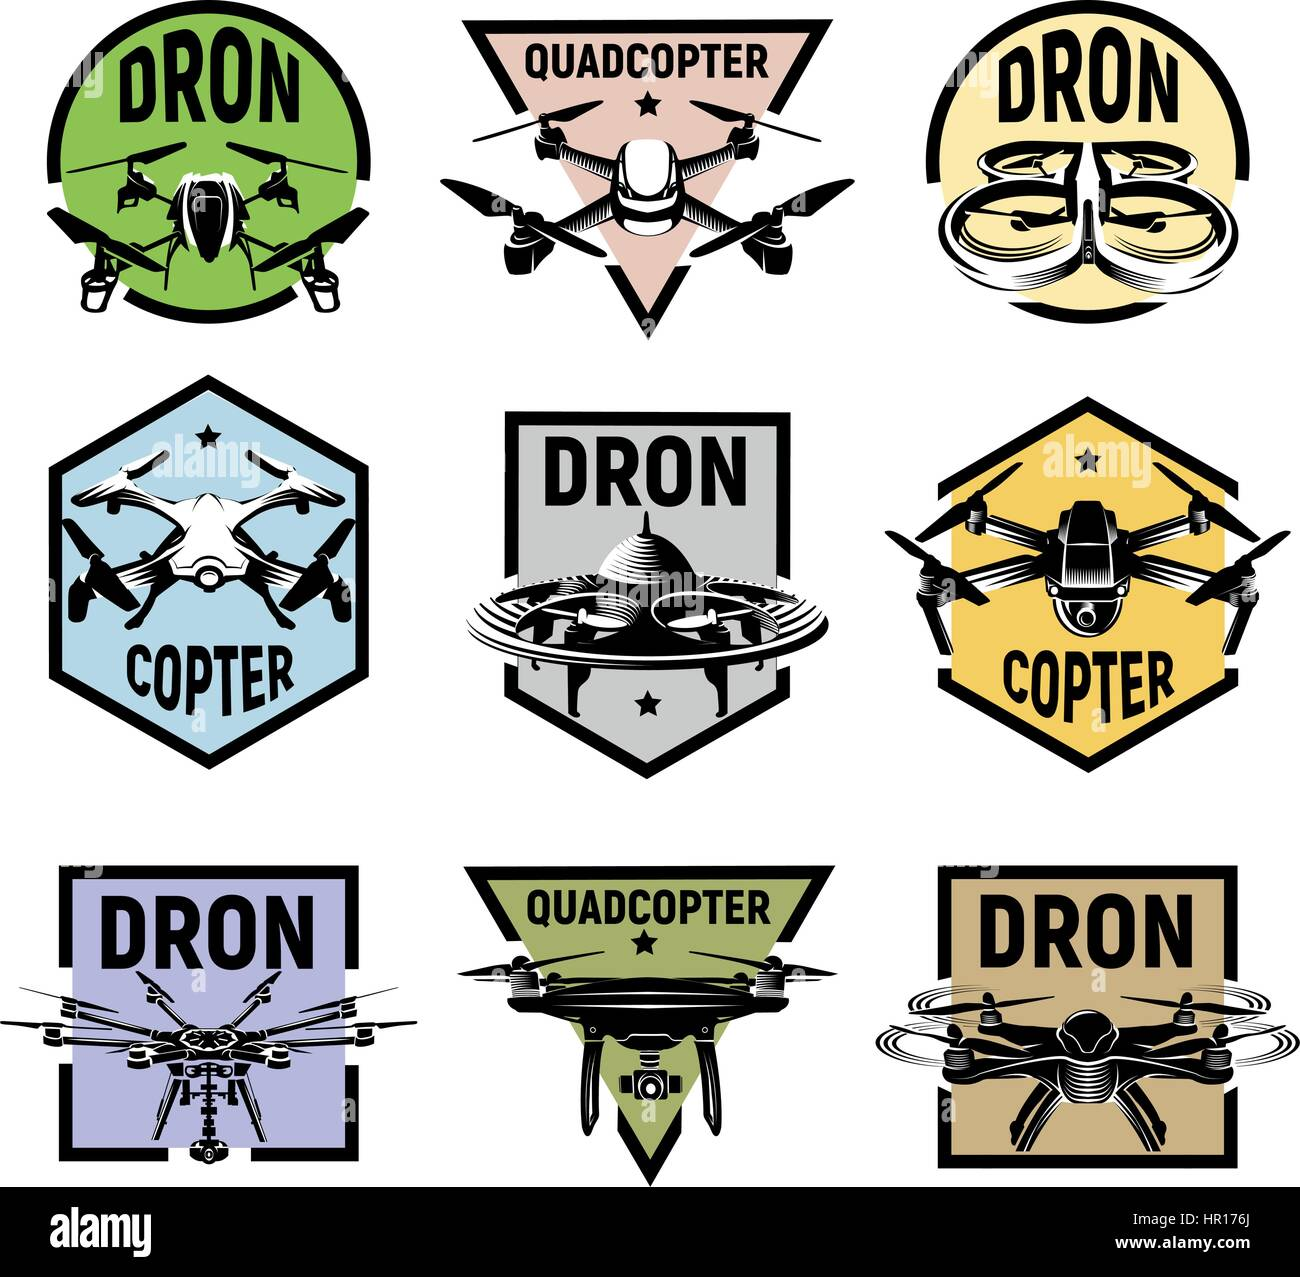 Isolated quadcopter icons in colorful frames, rc drone logos Stock ...